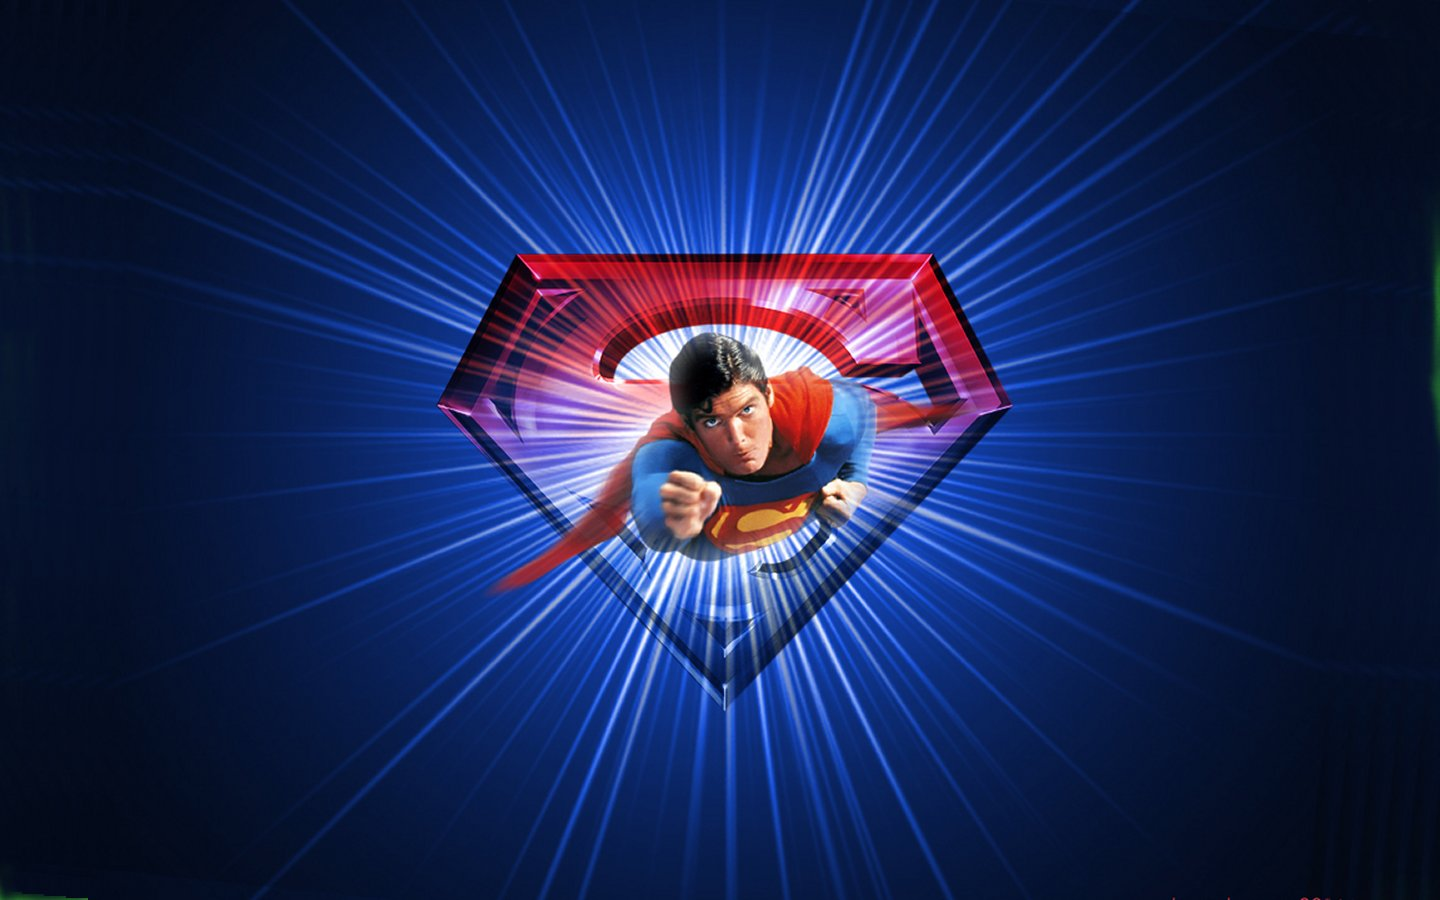 another cool Superman Wallpaper 1440x900